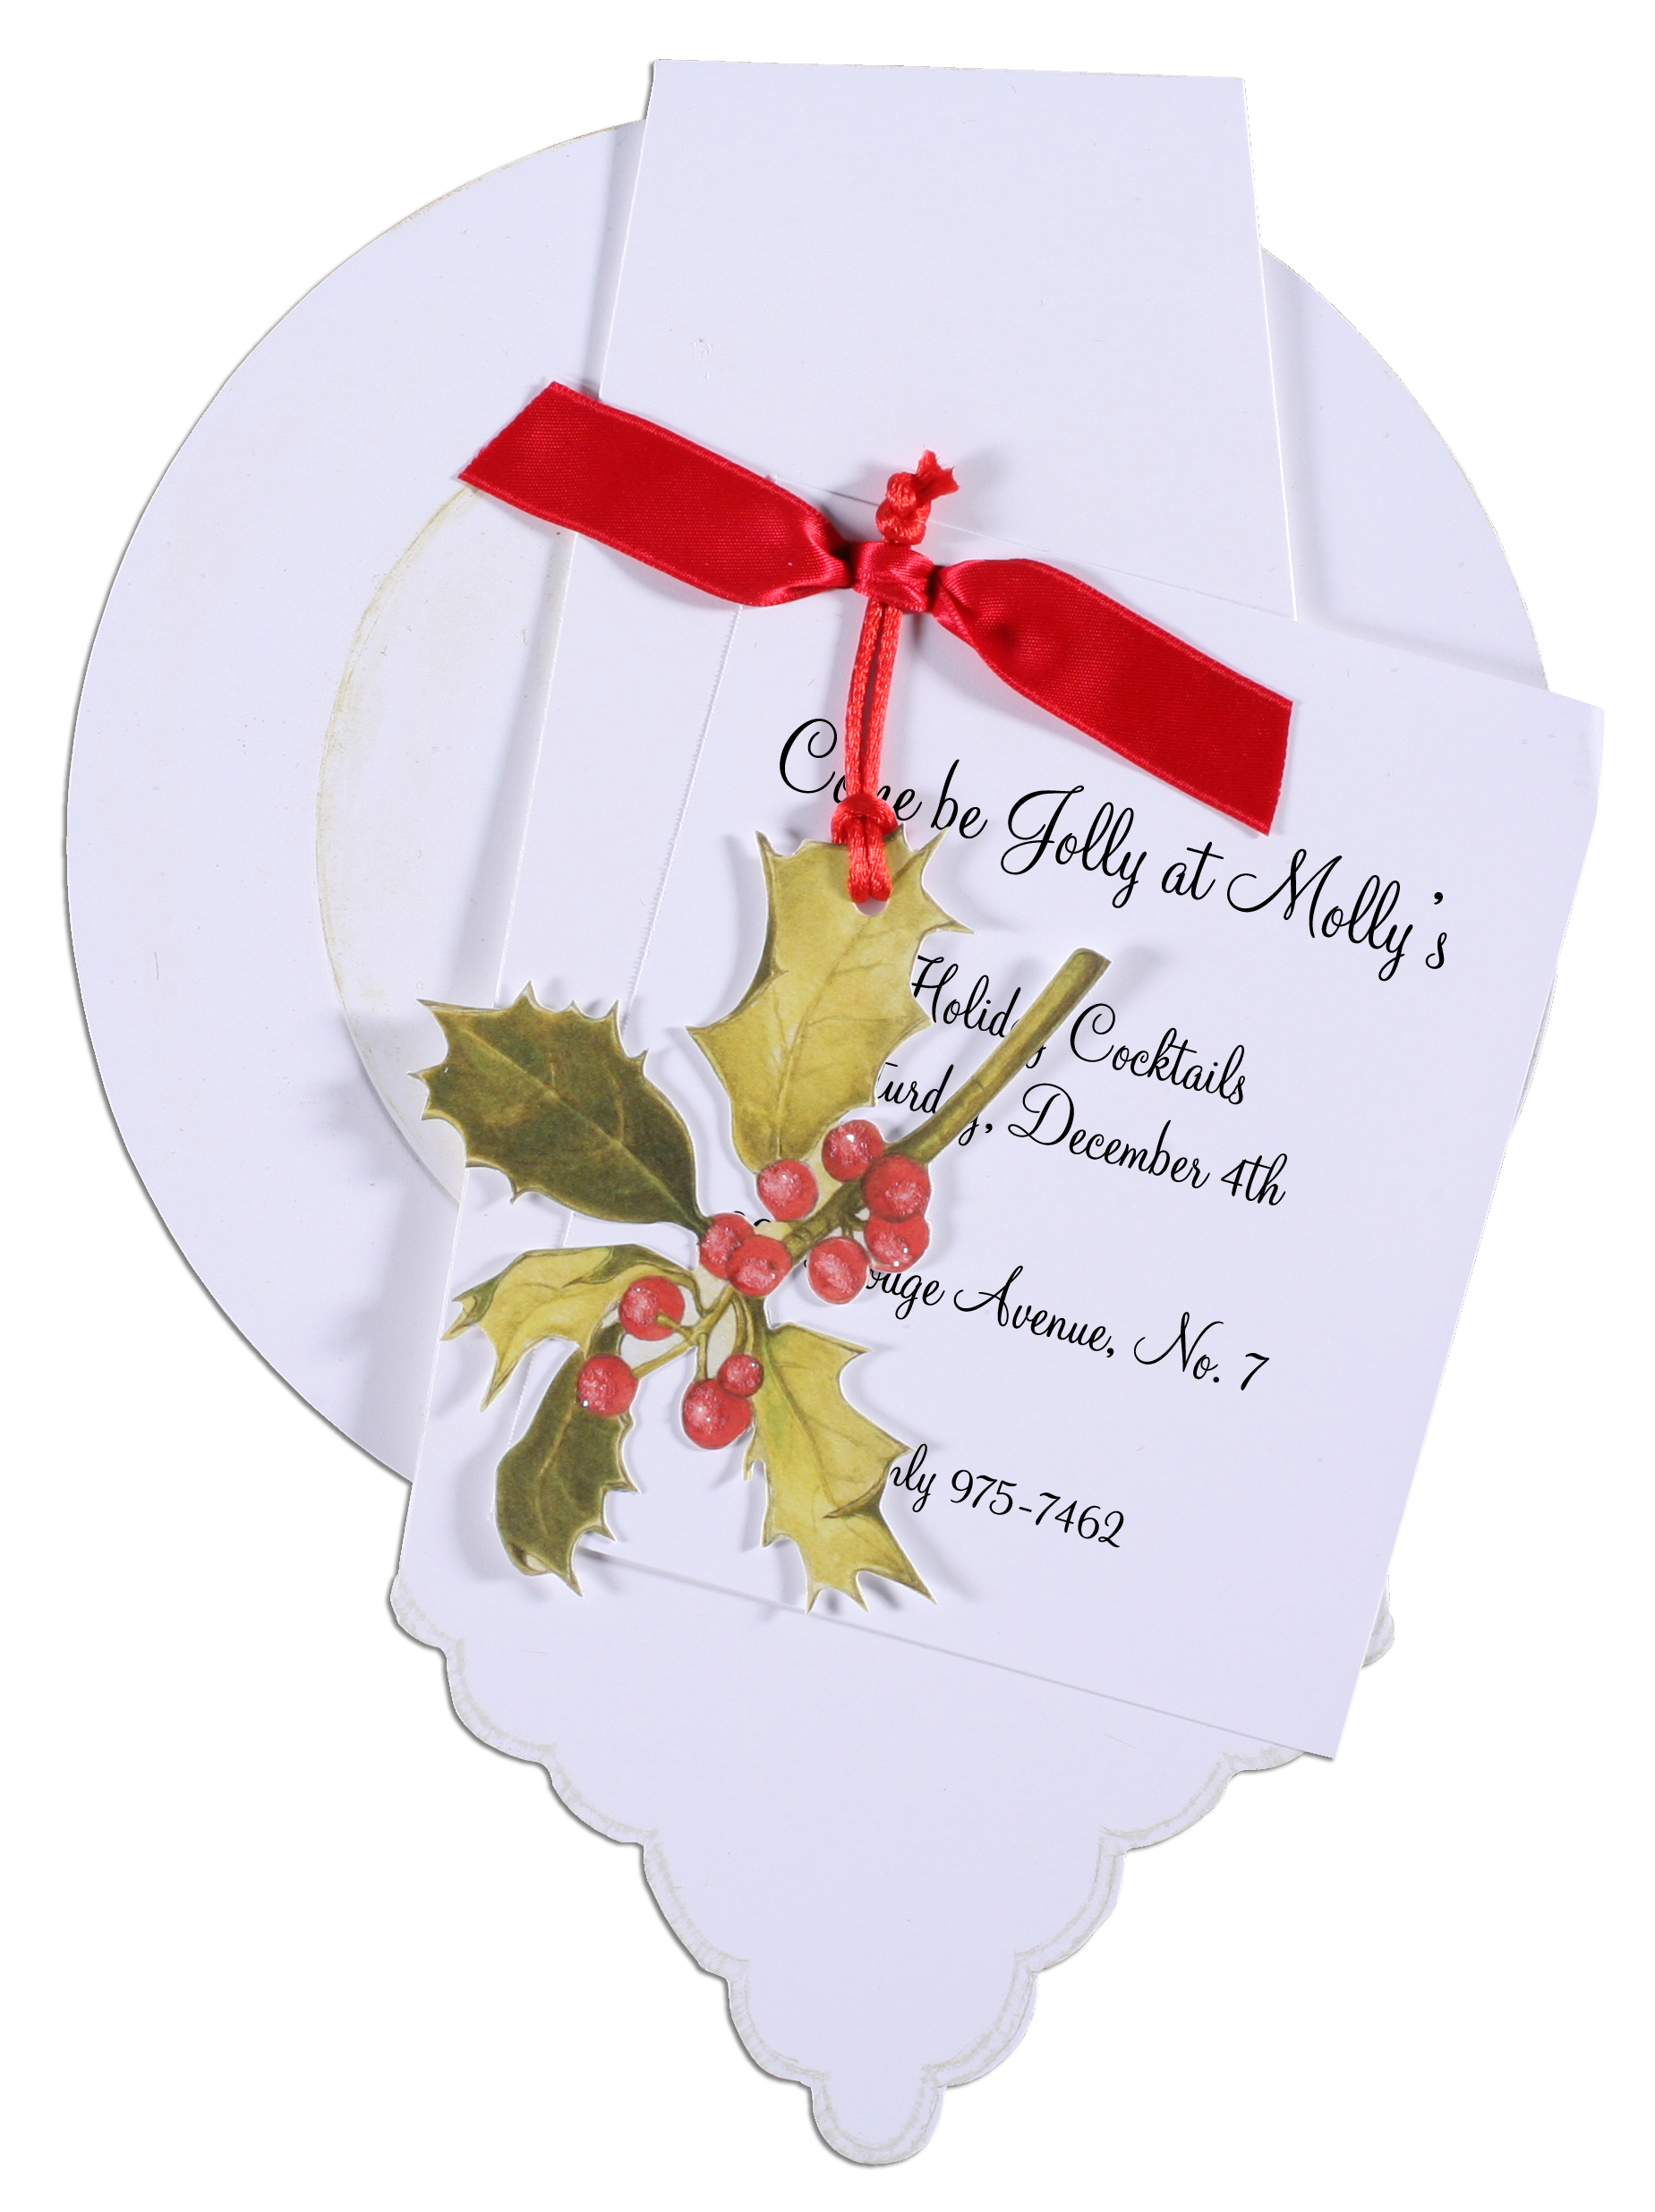 Dinner Party Invitation with Red Ribbon and Holly